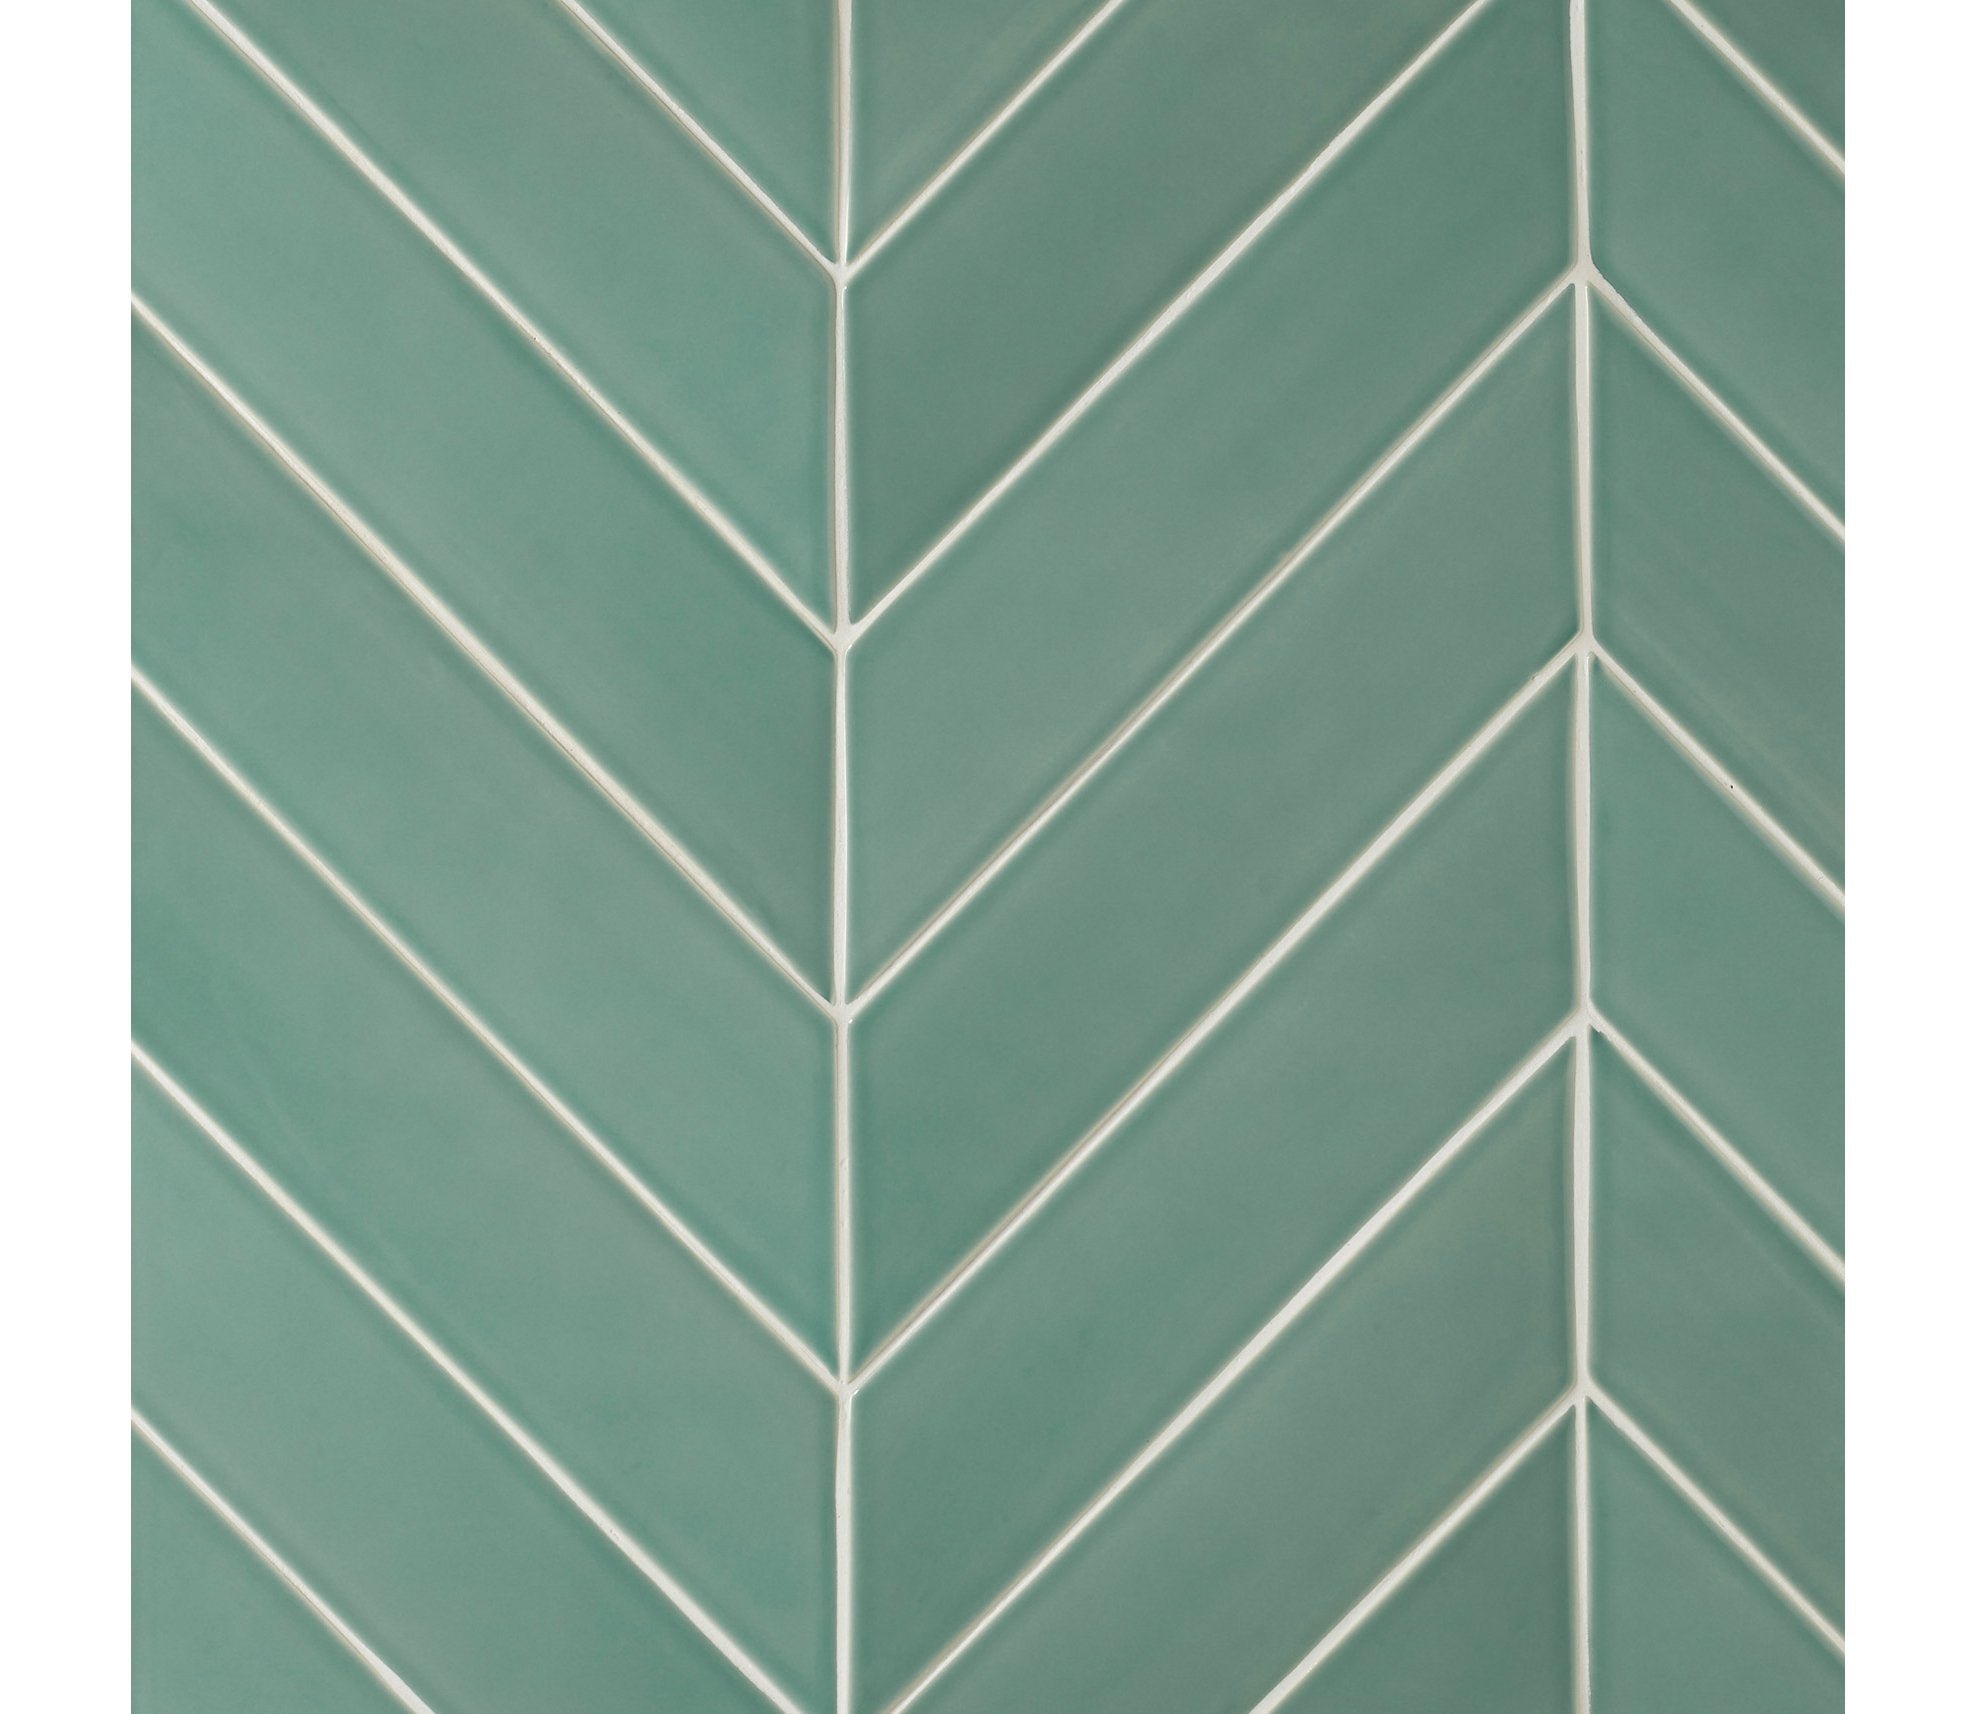 Hanley Traditional Tiles Product Image 15